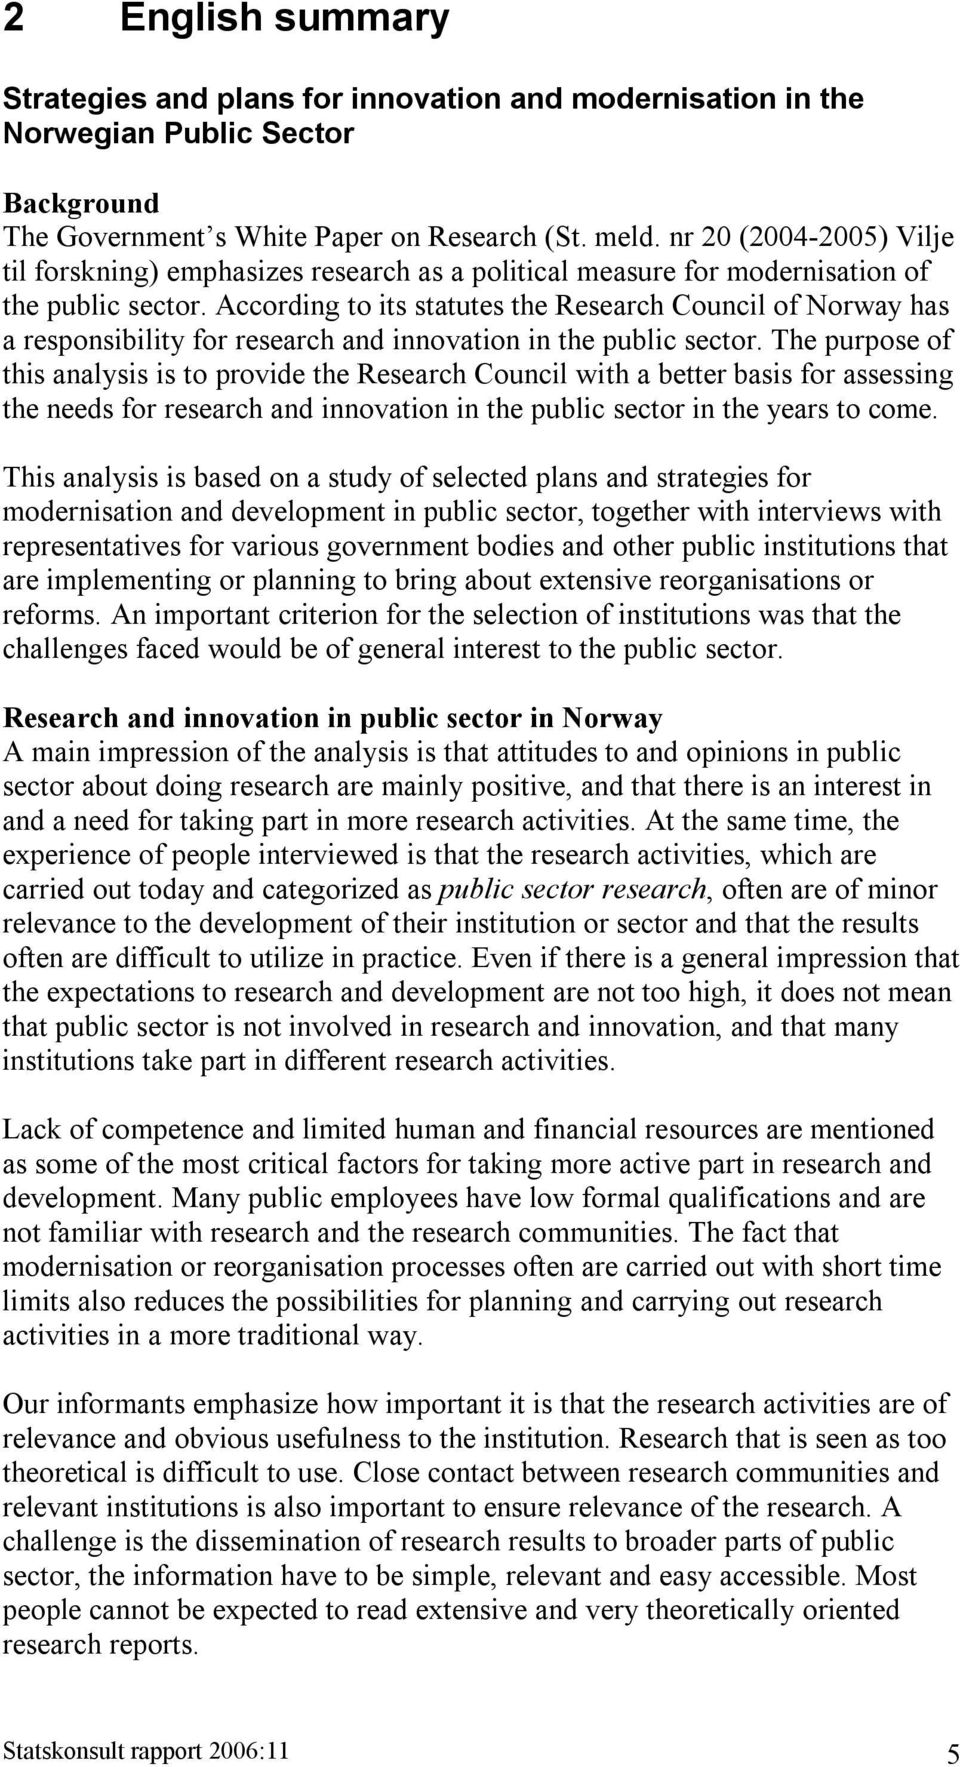 According to its statutes the Research Council of Norway has a responsibility for research and innovation in the public sector.